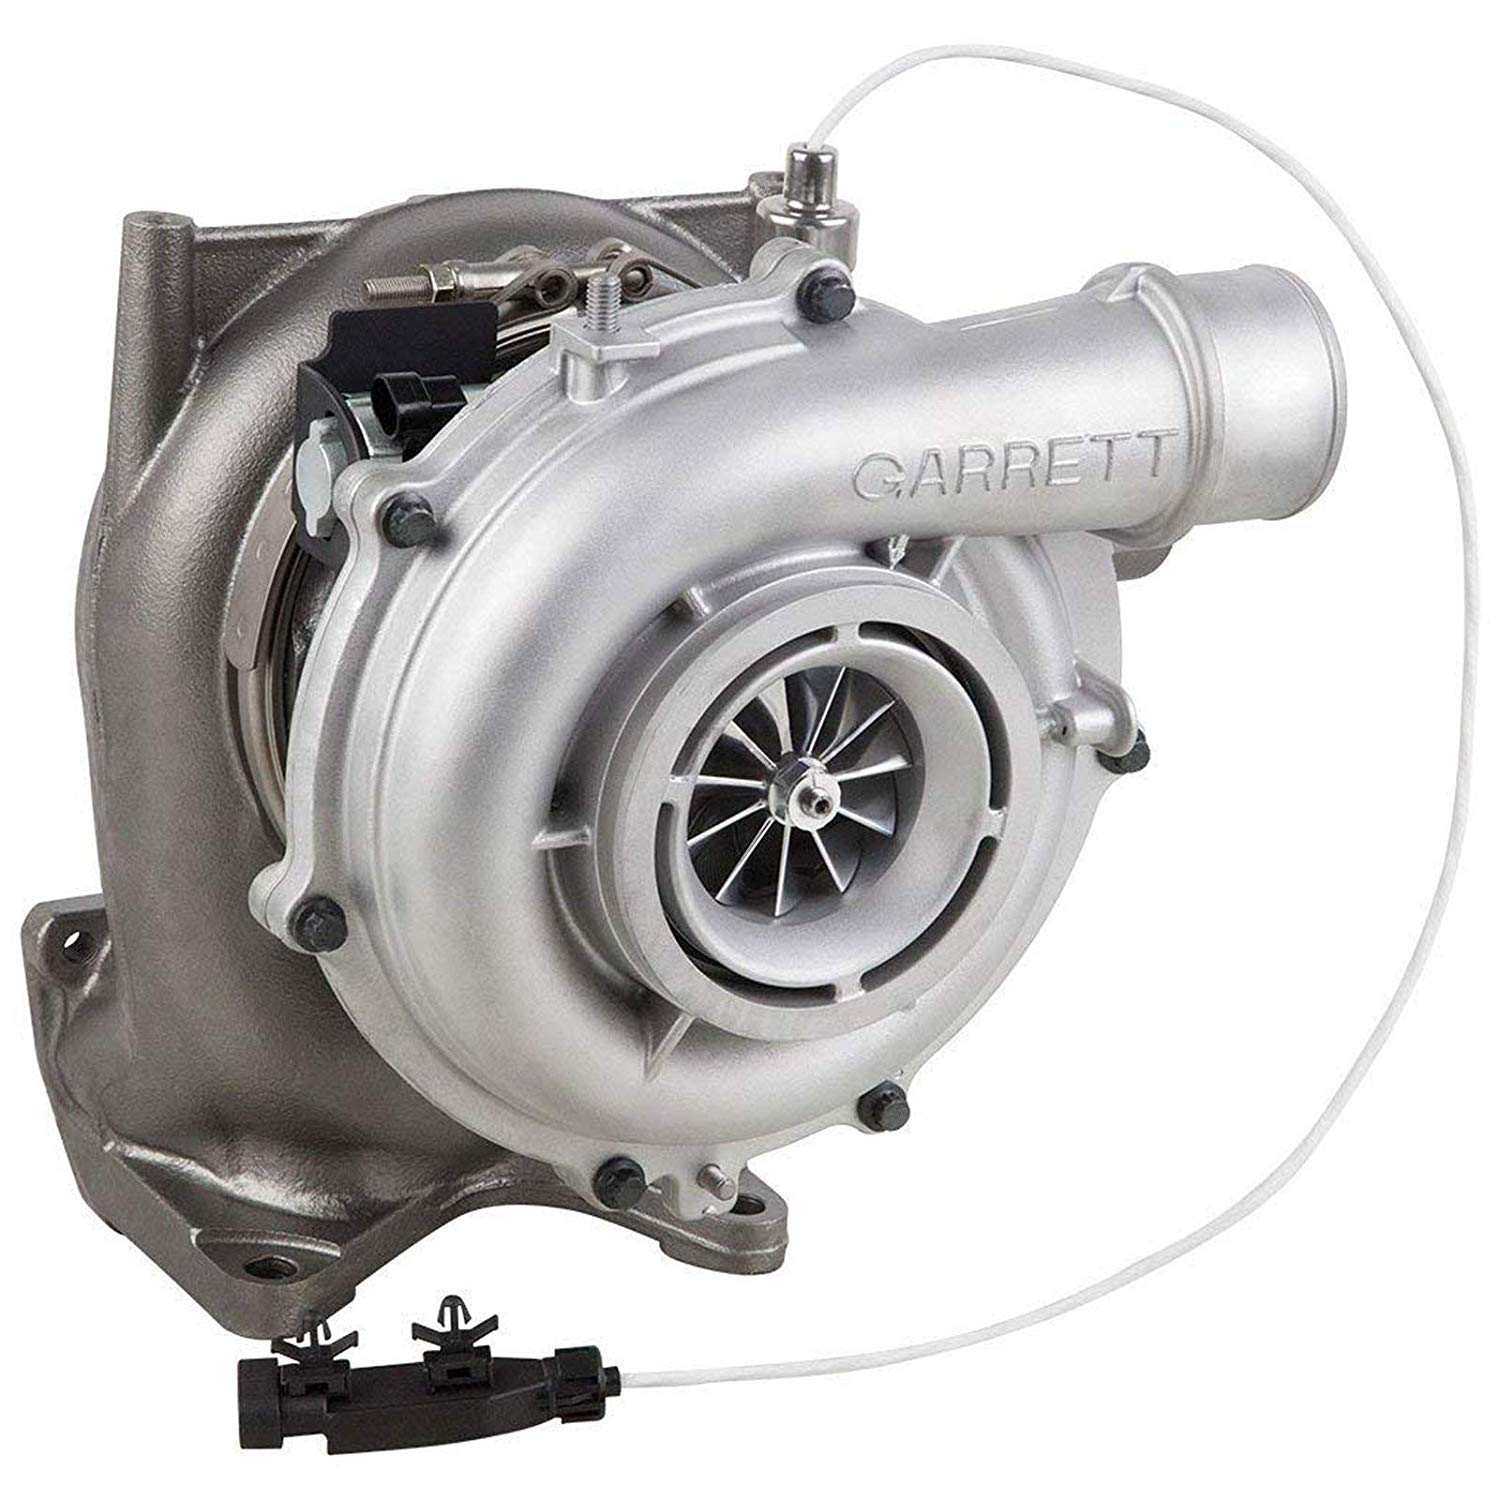 Pure Power Remanufactured GMC Chevy Duramax 6.6L Turbocharger 2500 3500 - FULLY TESTED Turbo - DK Engine Parts (LLY 2004.5-2006.5)